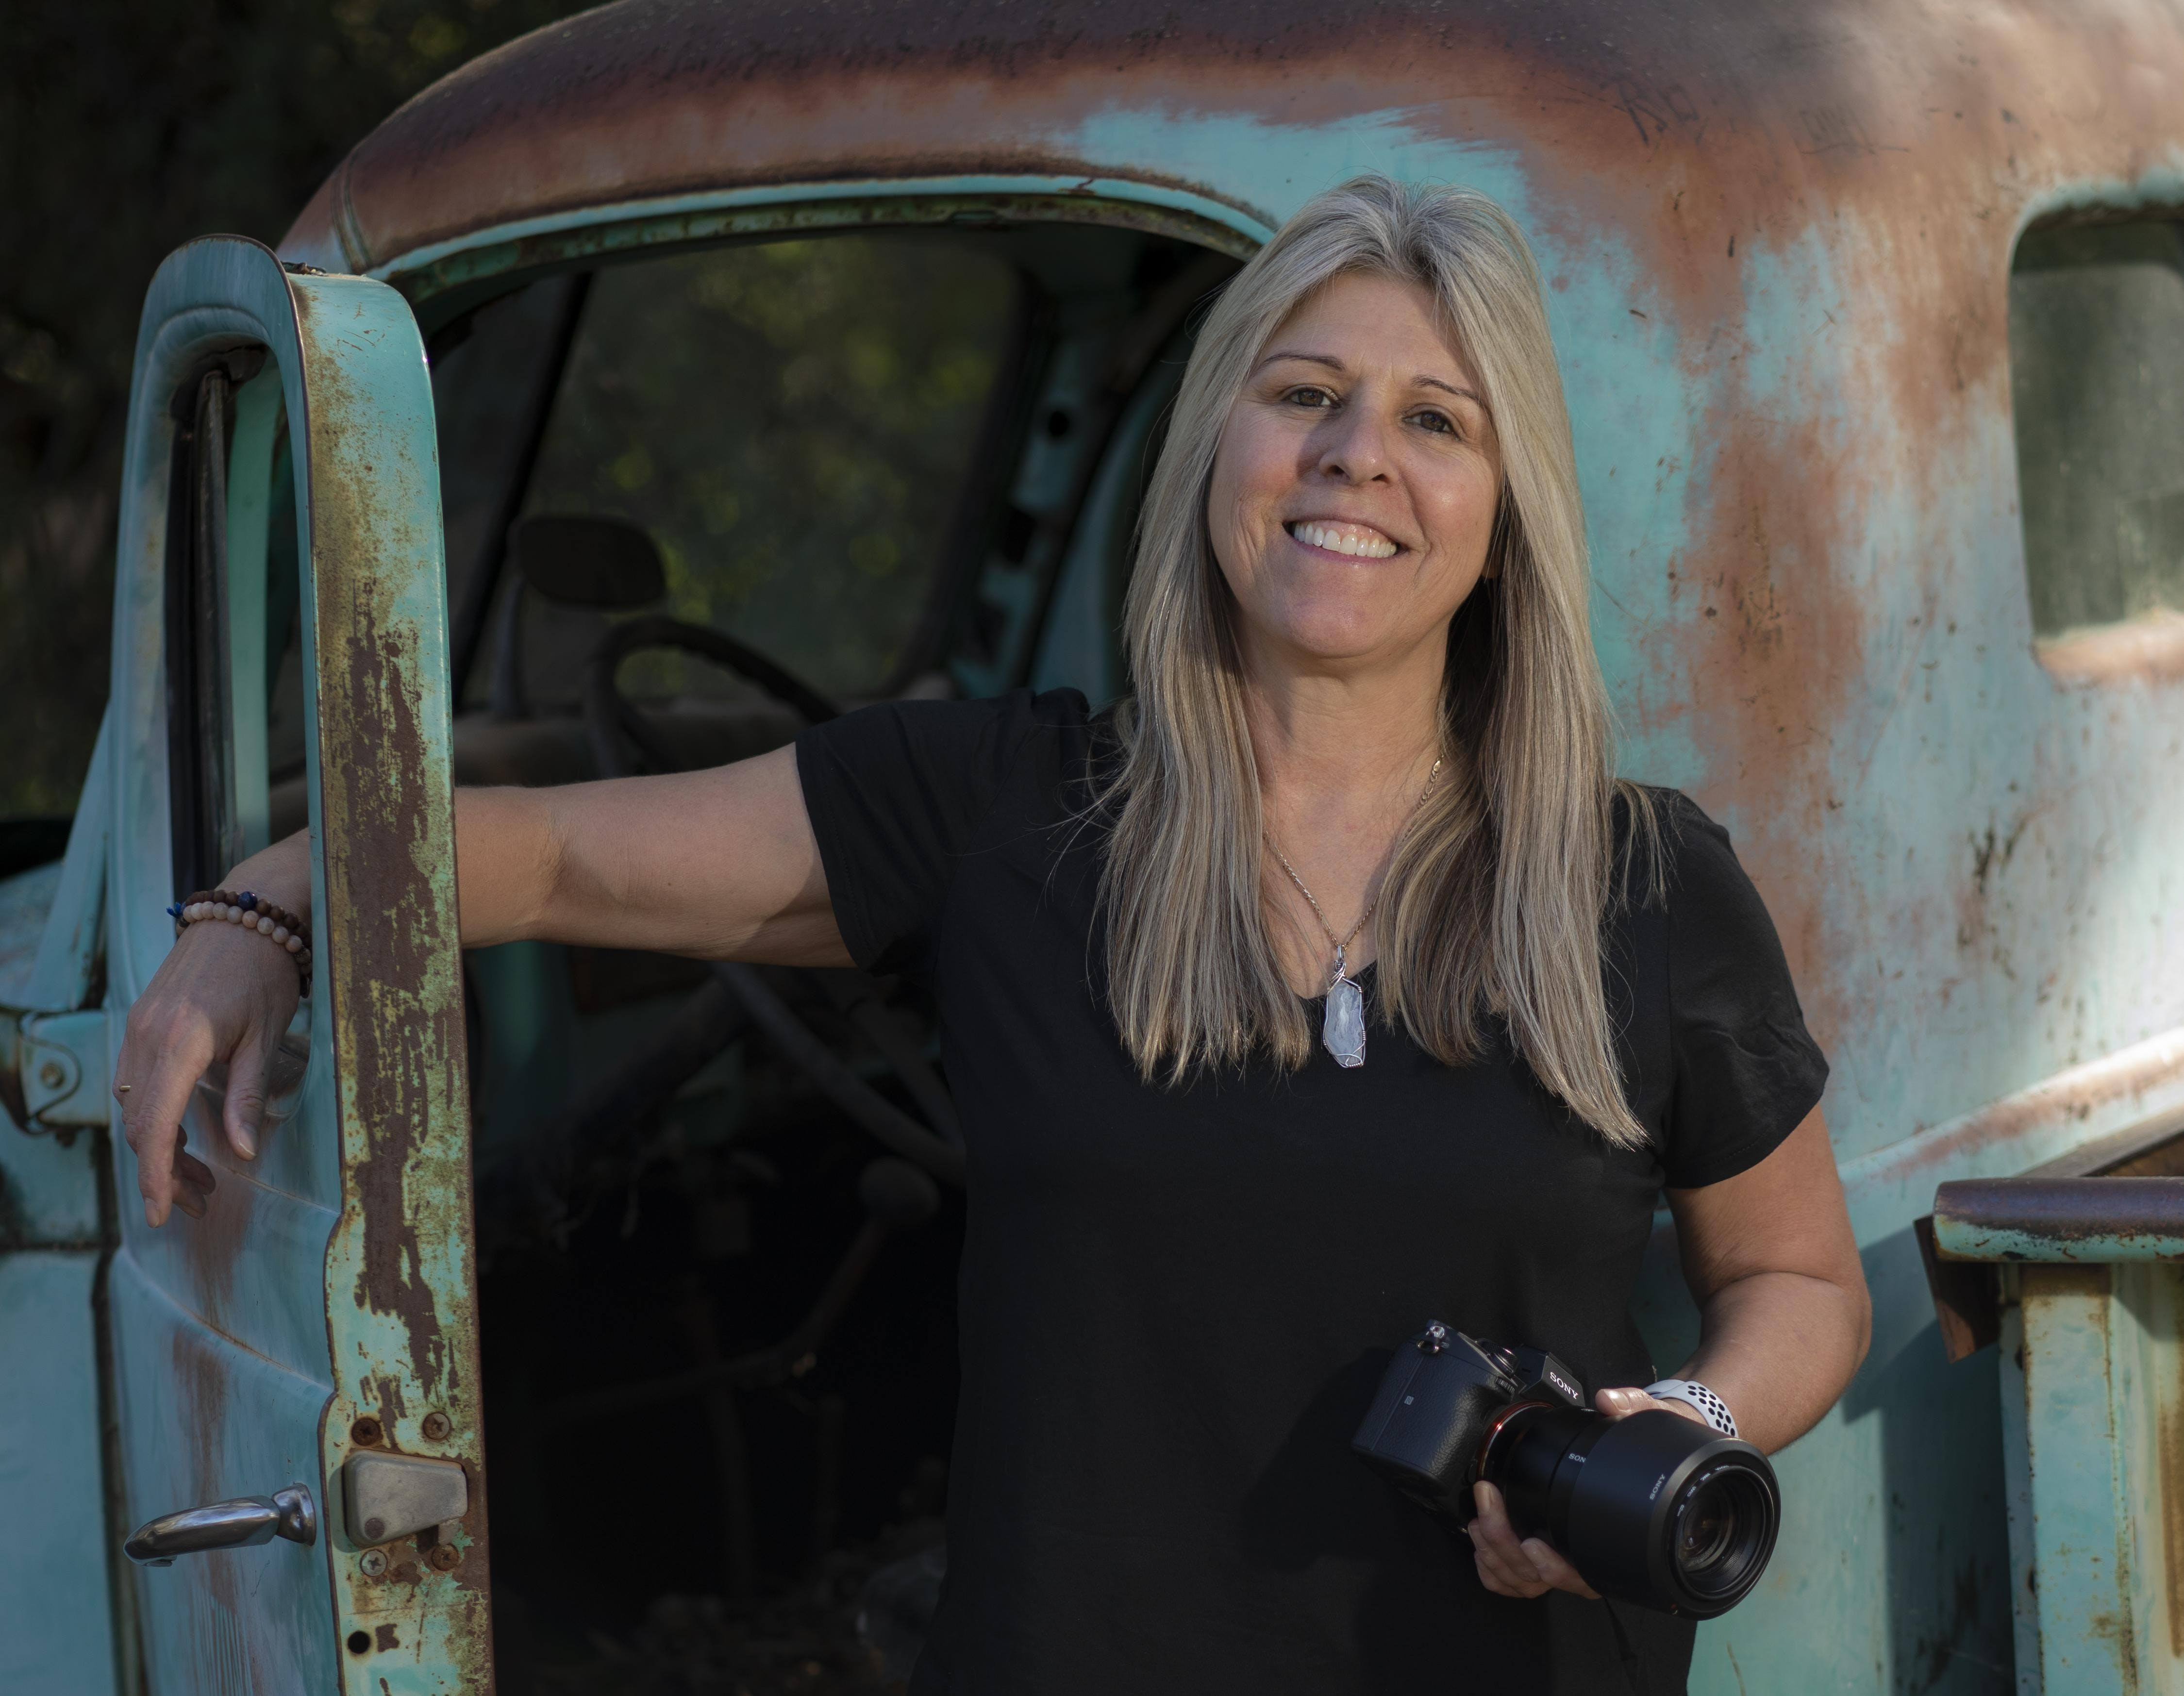 2019 Arizona Author Series - Susan Tatterson, Abandoned Arizona: Ghost Towns and Legends